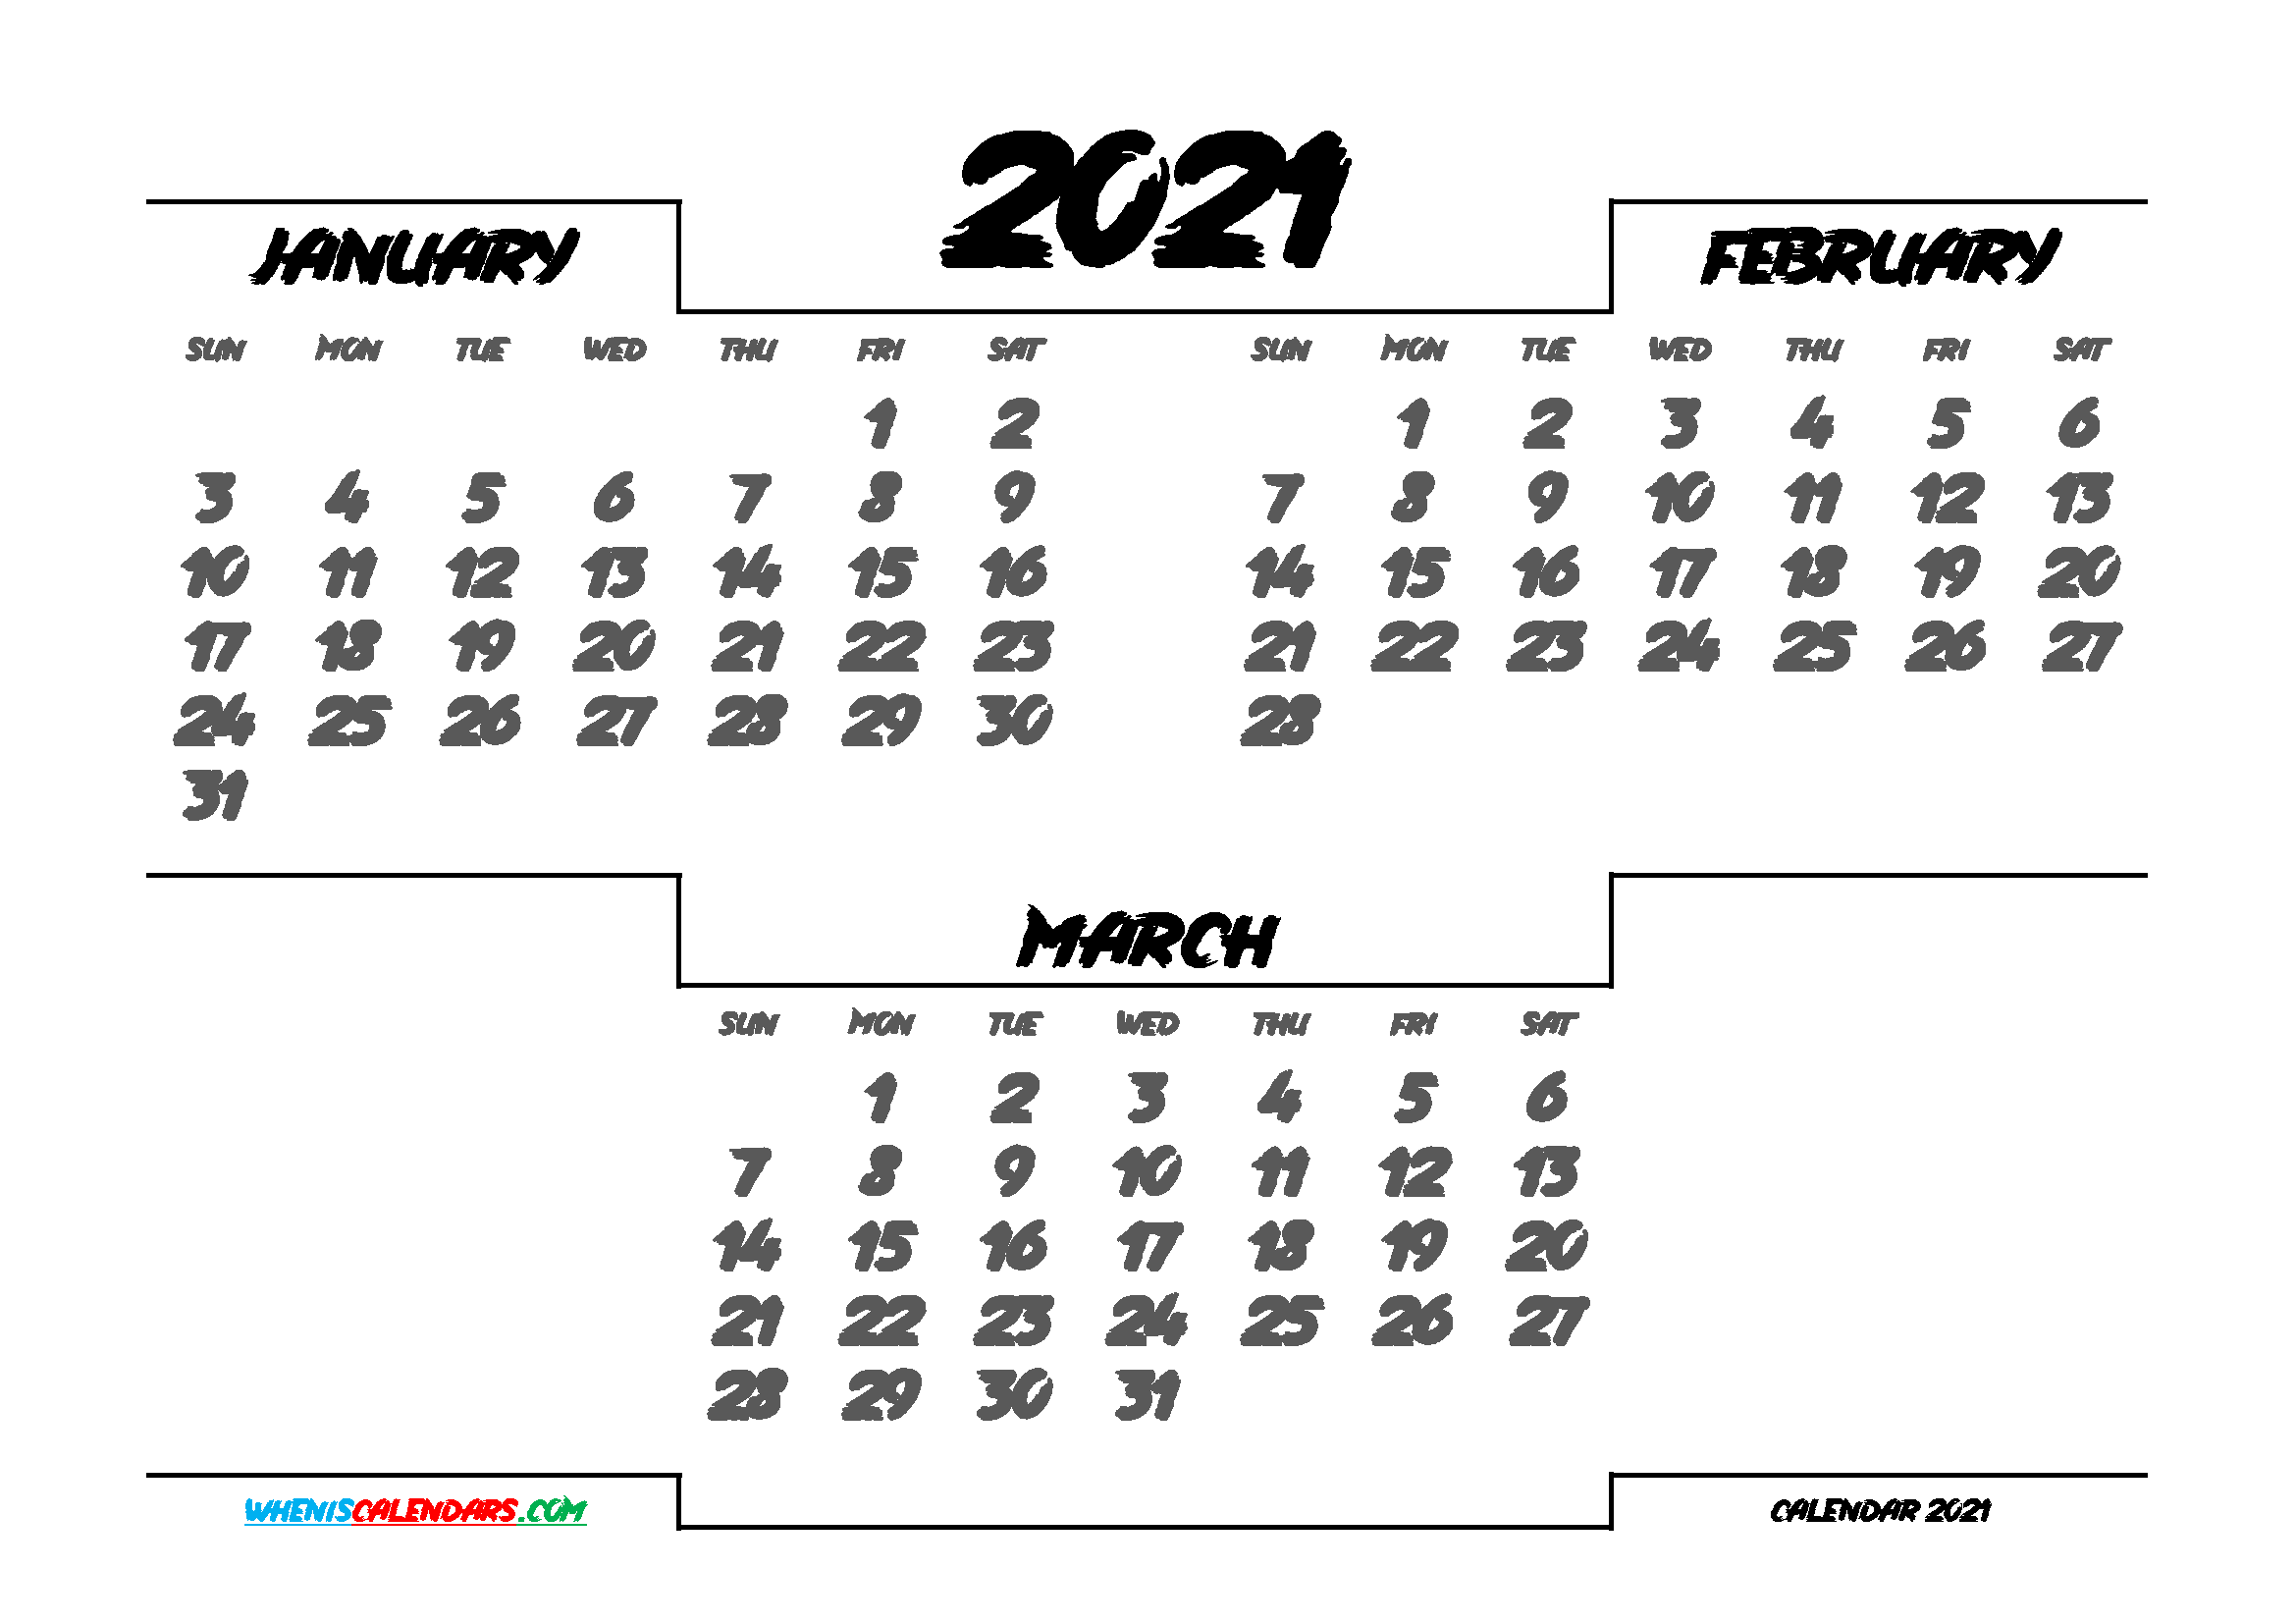 January February March 2021 Calendar printable 3 month calendar on one page